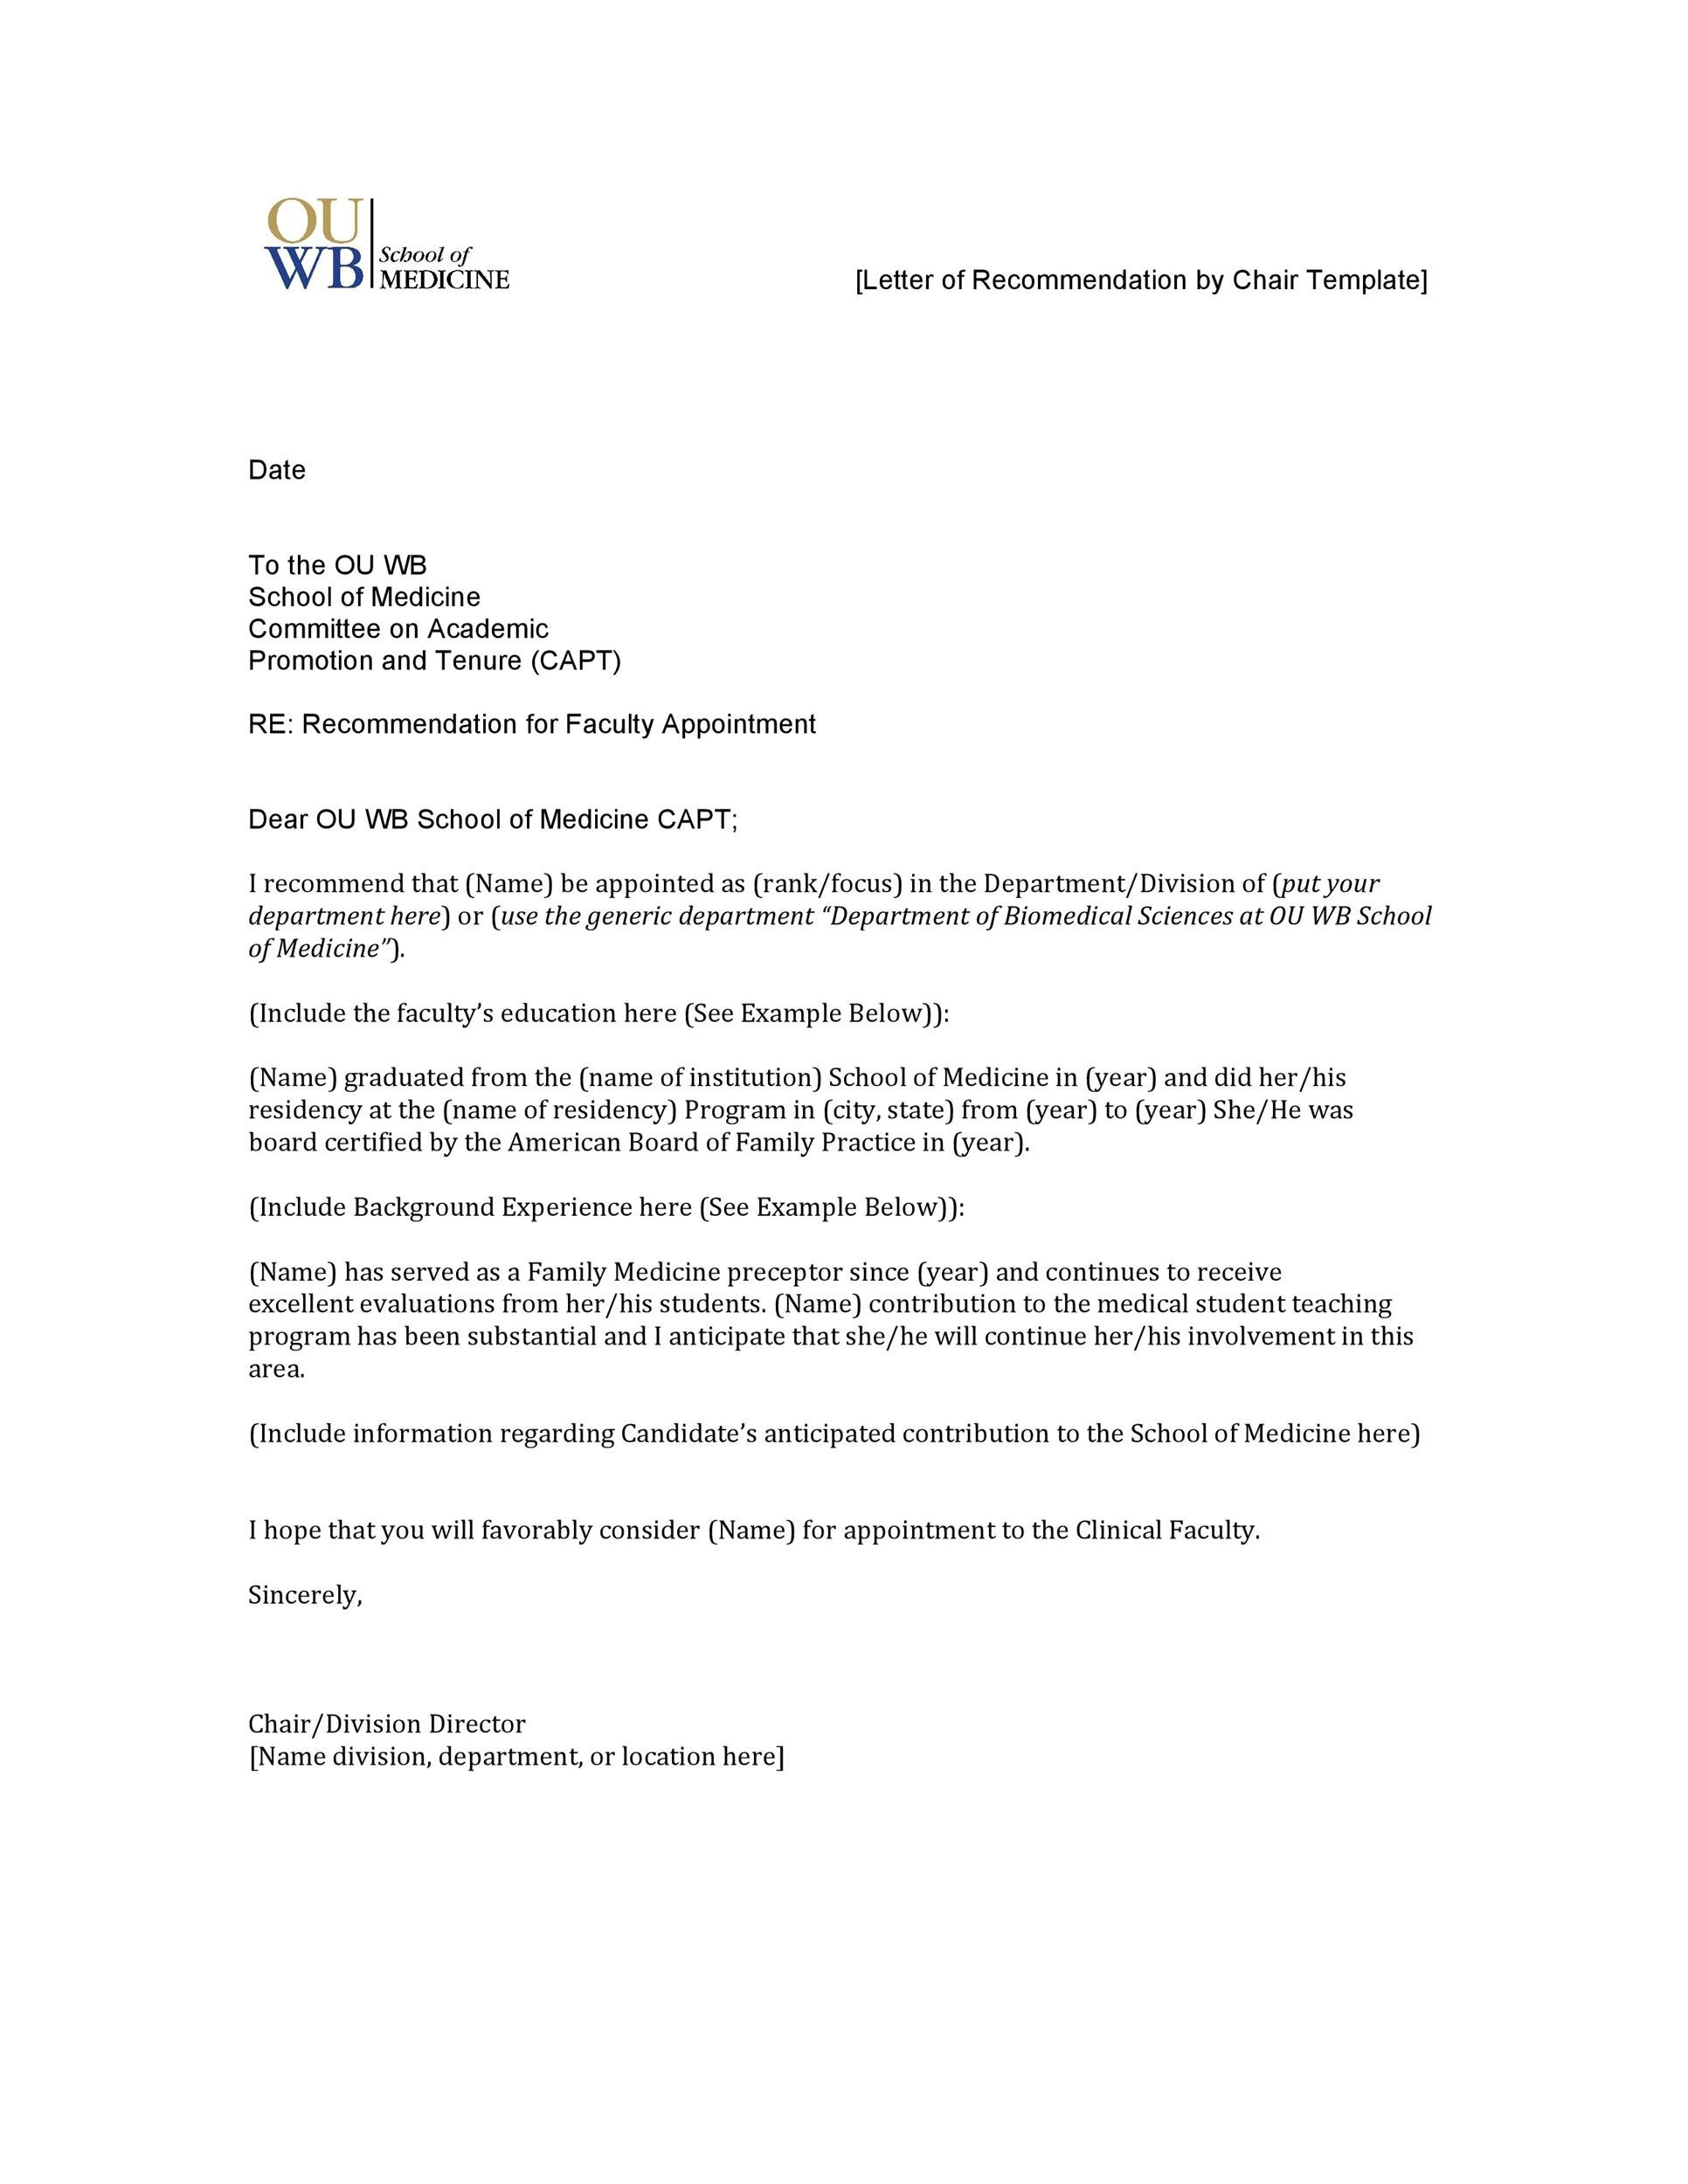 43 FREE Letter of Recommendation Templates  Samples